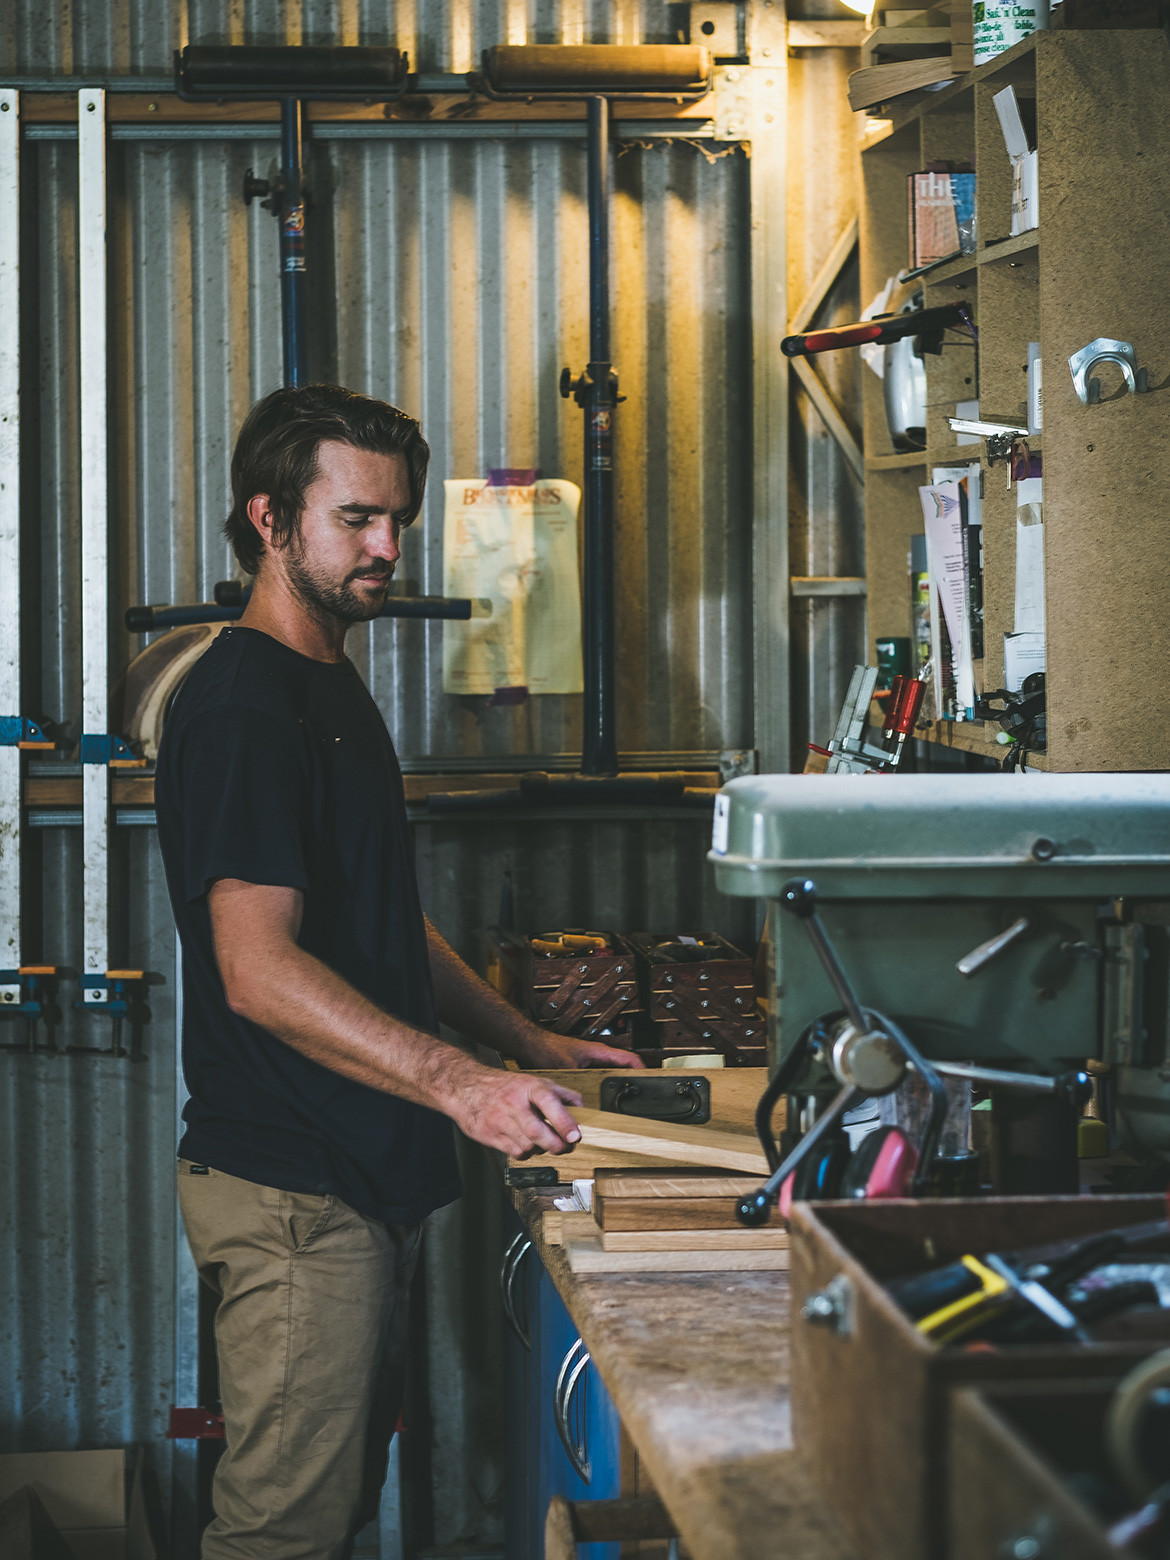 Martin Johnston furniture is designed and made in Byron Shire, using craftsmanship techniques and machinery Martin inherited from his father.